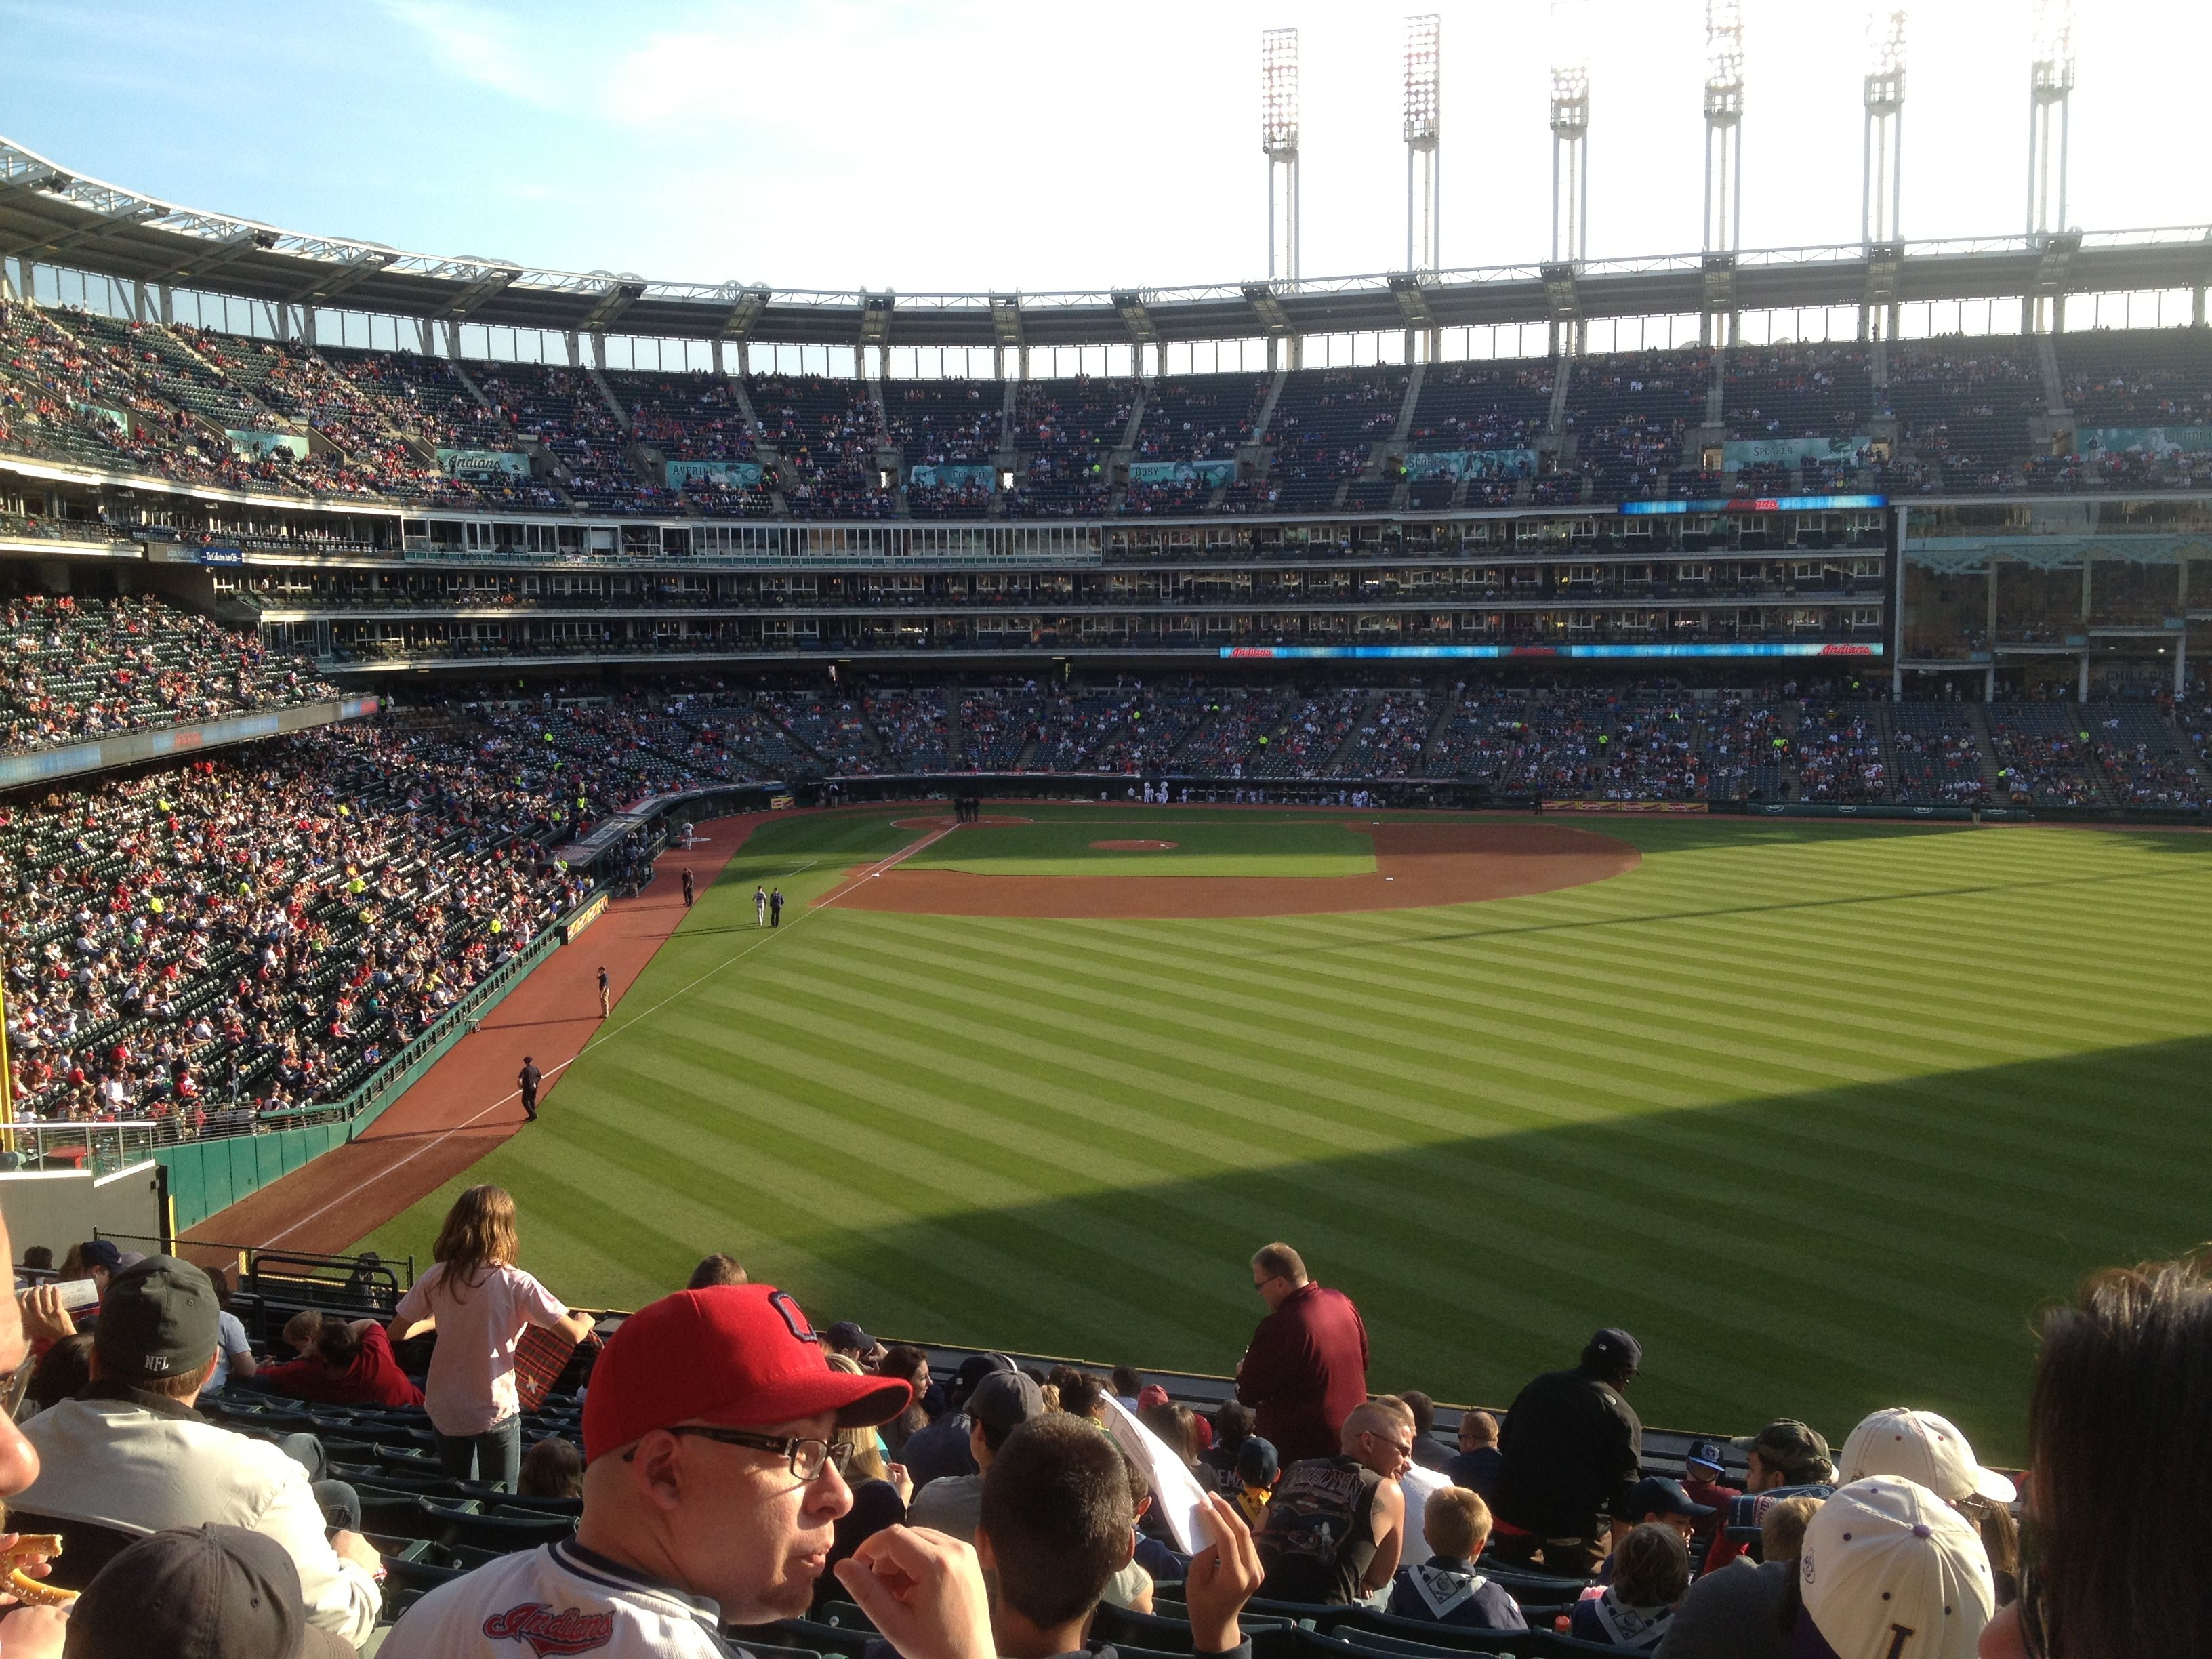 A day at the ballgame - Cleveland, Indians Progressive Field.